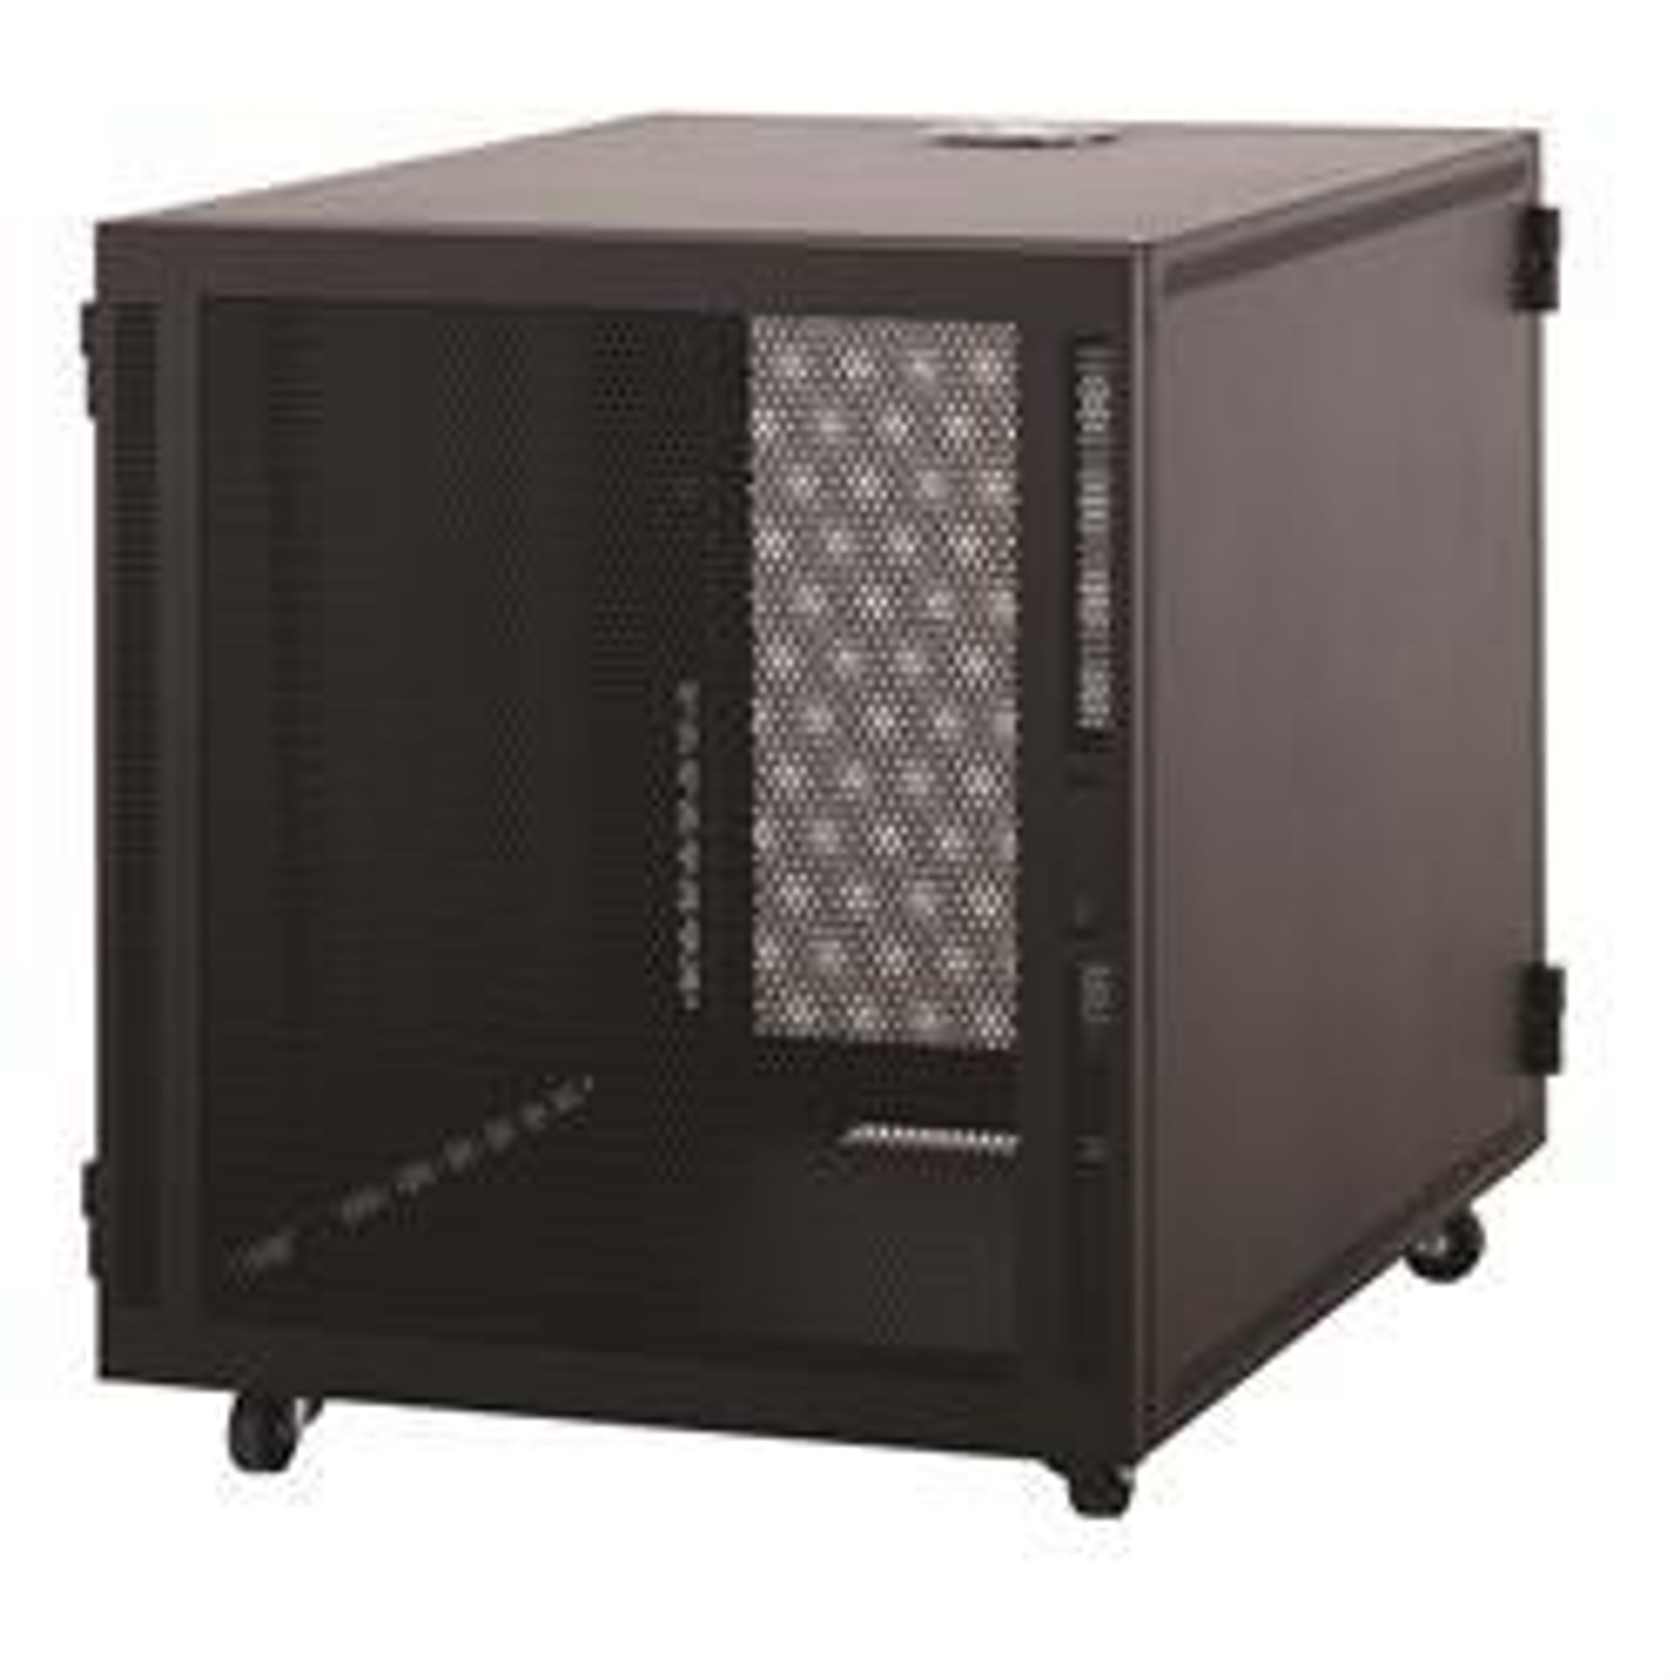 12u Small Desk Top Server Rack Cabinet With Front And Rear Doors Gaw Technology